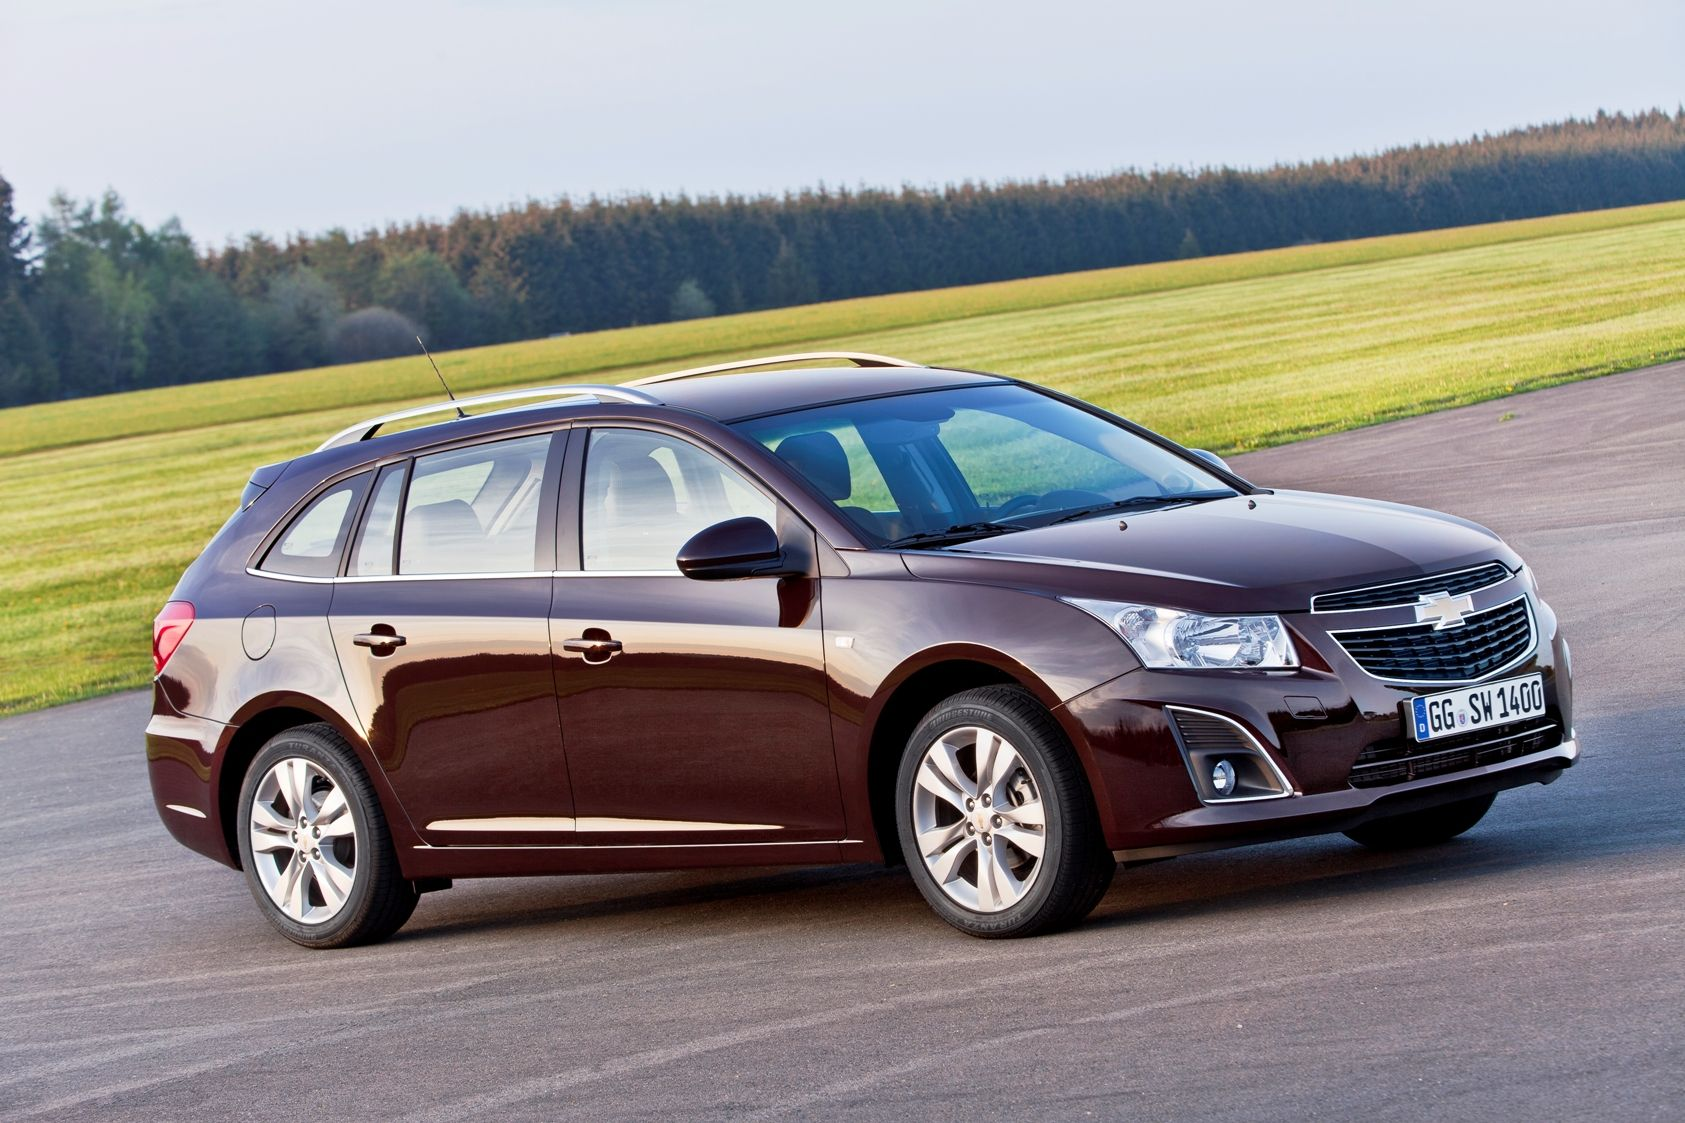 Chevrolet, the Cruze Family Expands        · The new design also improves the car's sporting appearance than  · 1478 liter with large luggage capacity  · Chevrolet MyLink enables the integration of information and entertainment system, smart phone  · The new 1.4L turbo gasoline engine produces 140 hp and maximum torque of 200 Nm  · Station wagon and safe driving characteristics of the Cruze in October with Turkey will take place in the market.